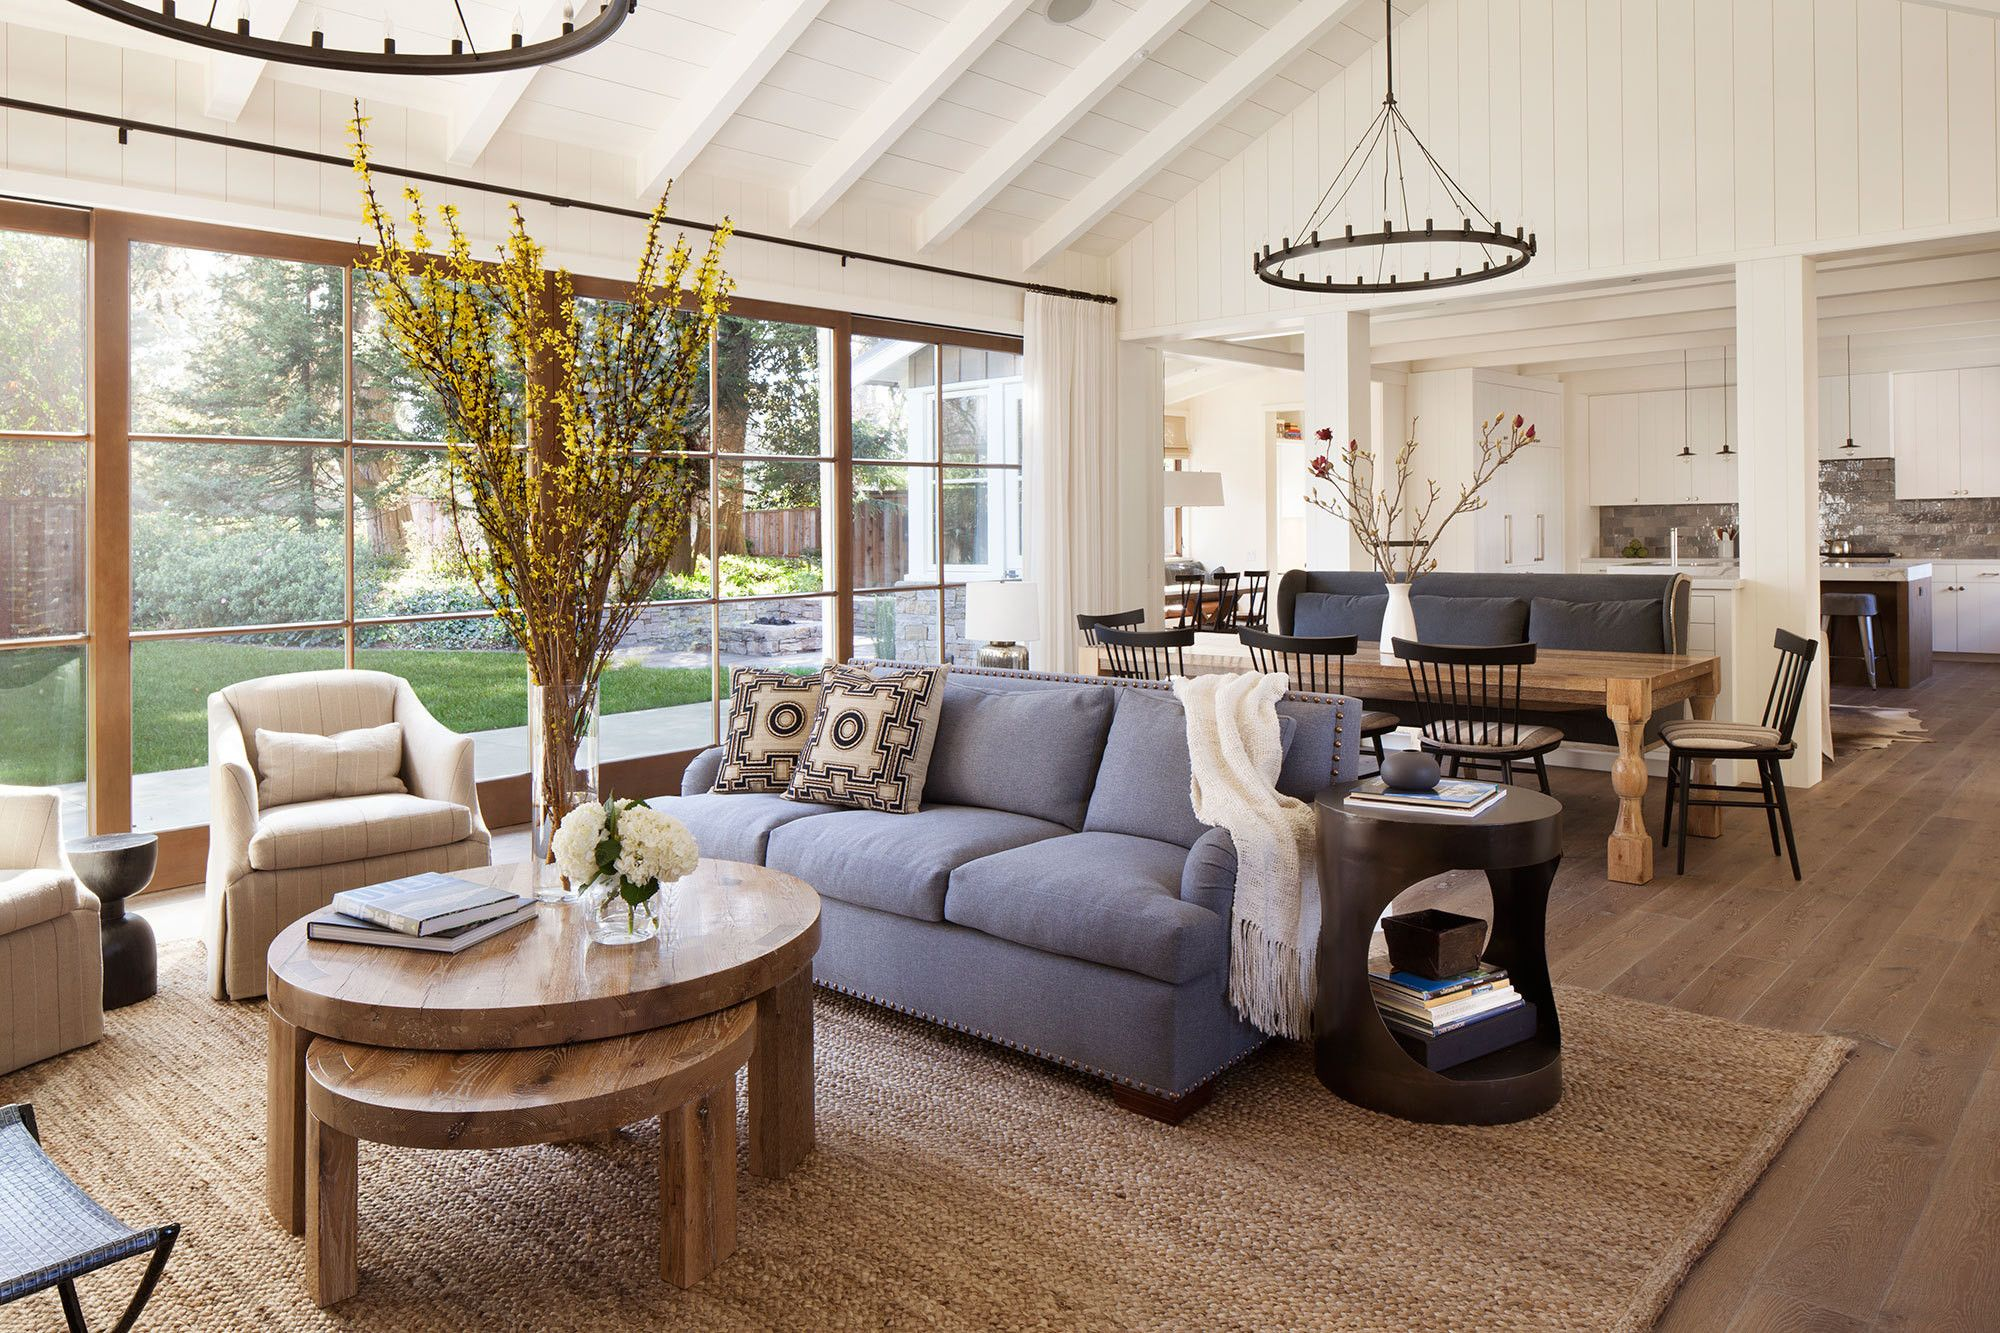 A Rustic Chic Family Home Made For Indoor Outdoor Living Farmhouse Style Living Room Rustic Farmhouse Living Room Farm House Living Room Family home with outdoor living room